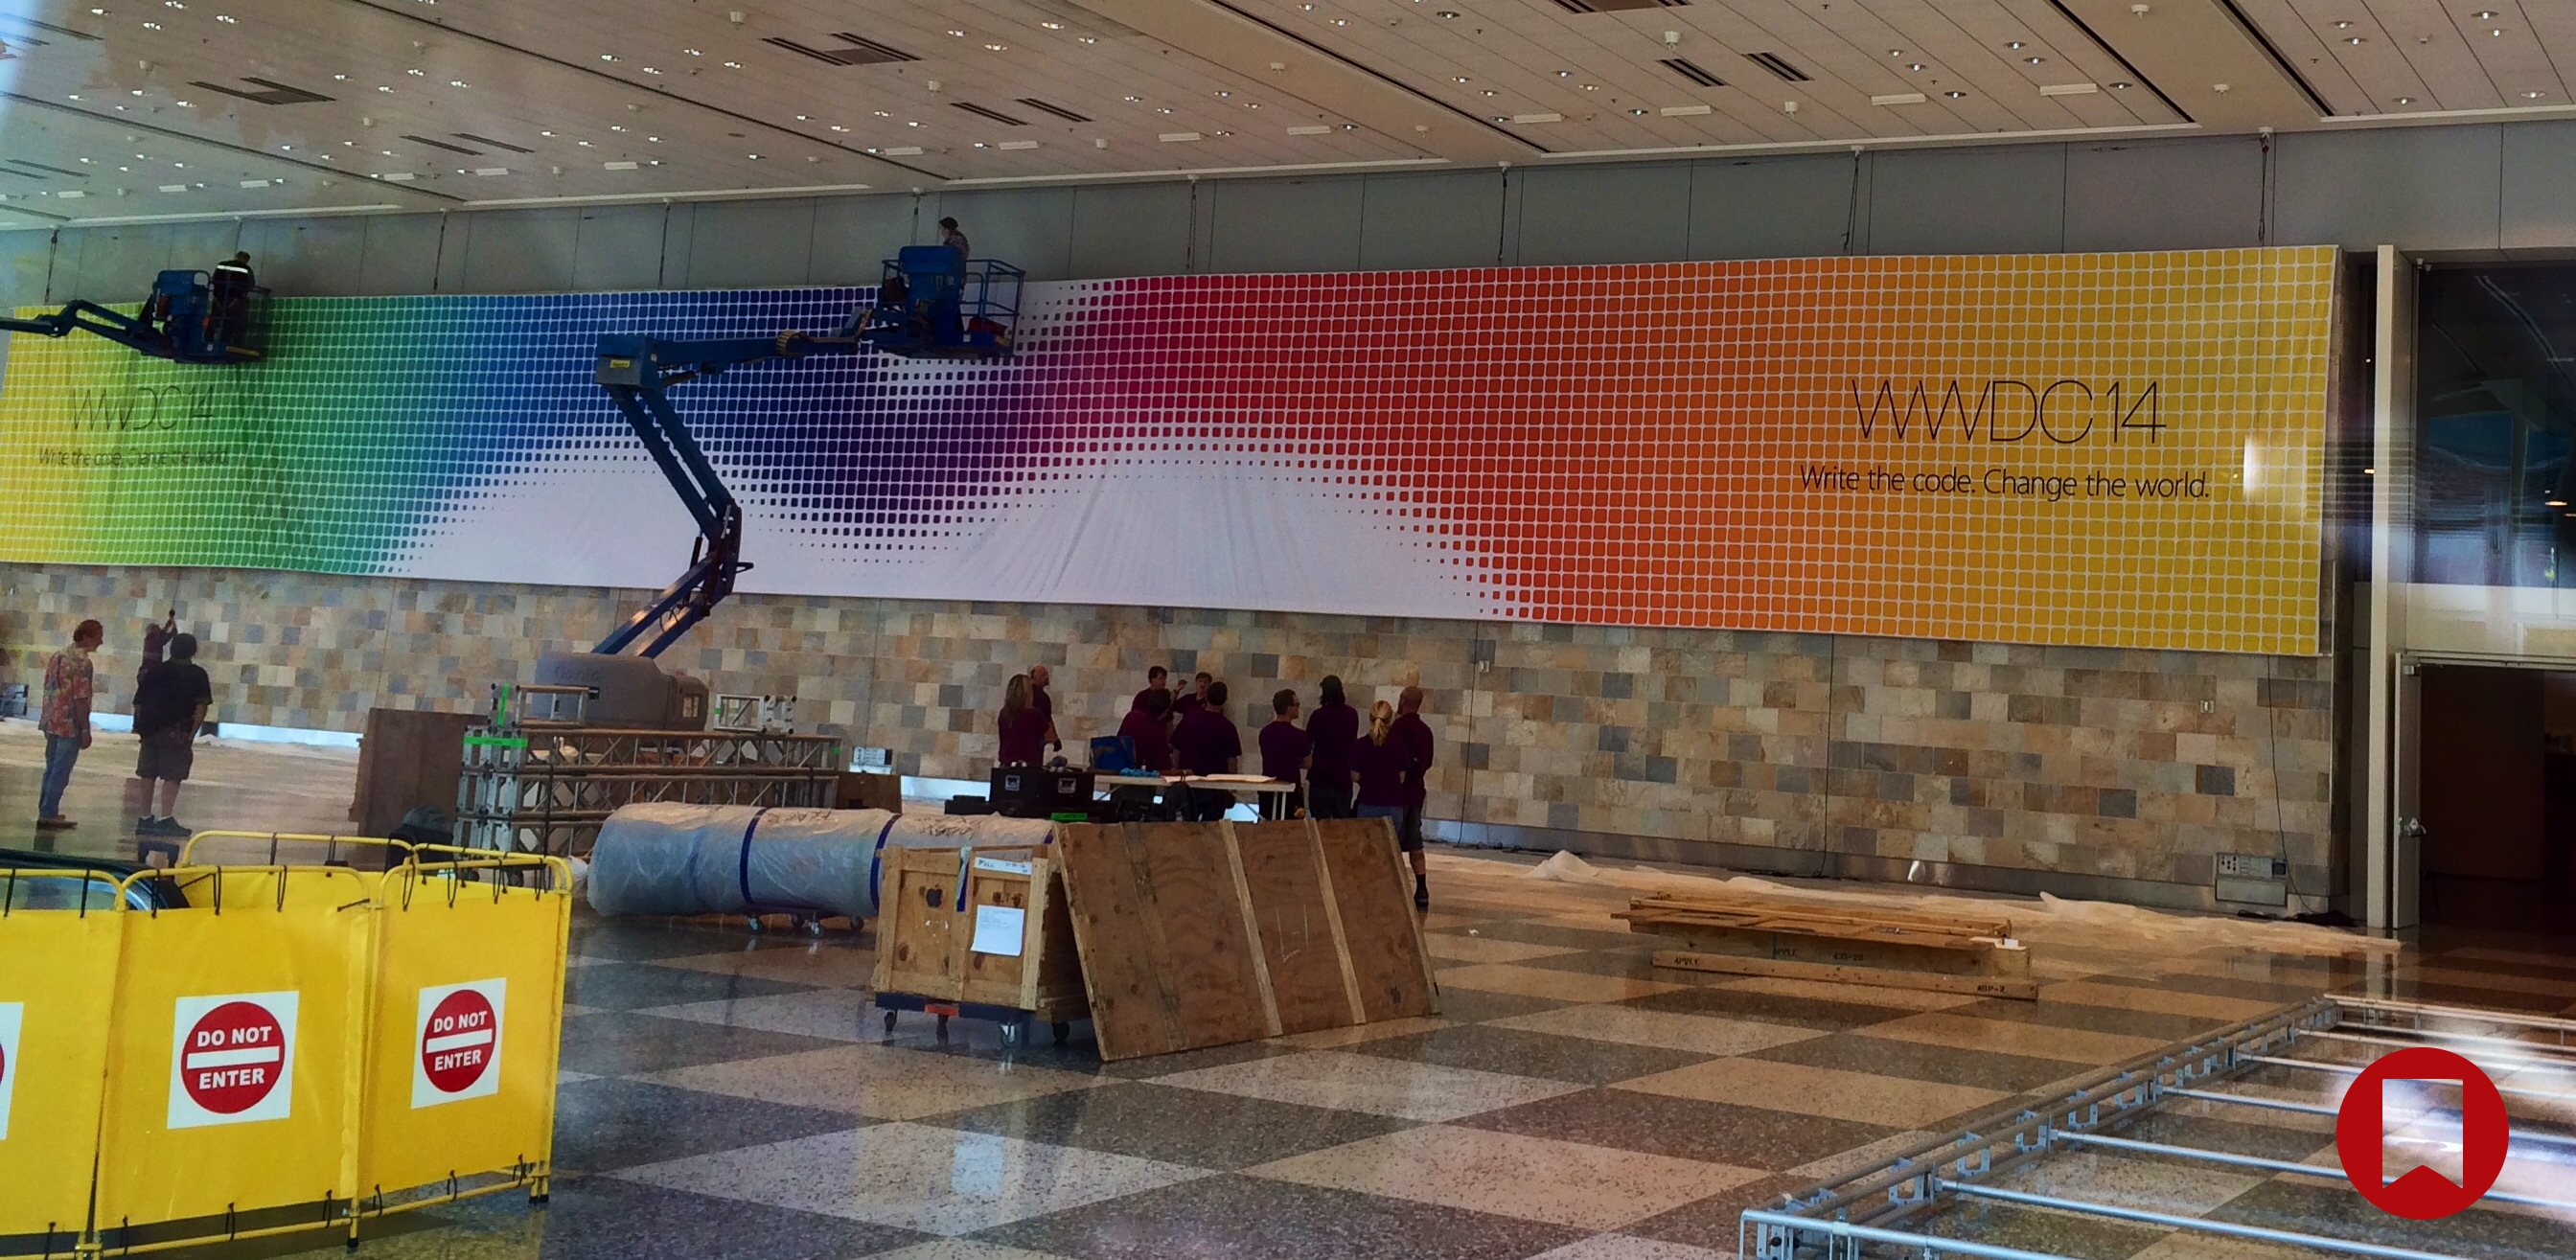 WWDC_2014_banners_moscone